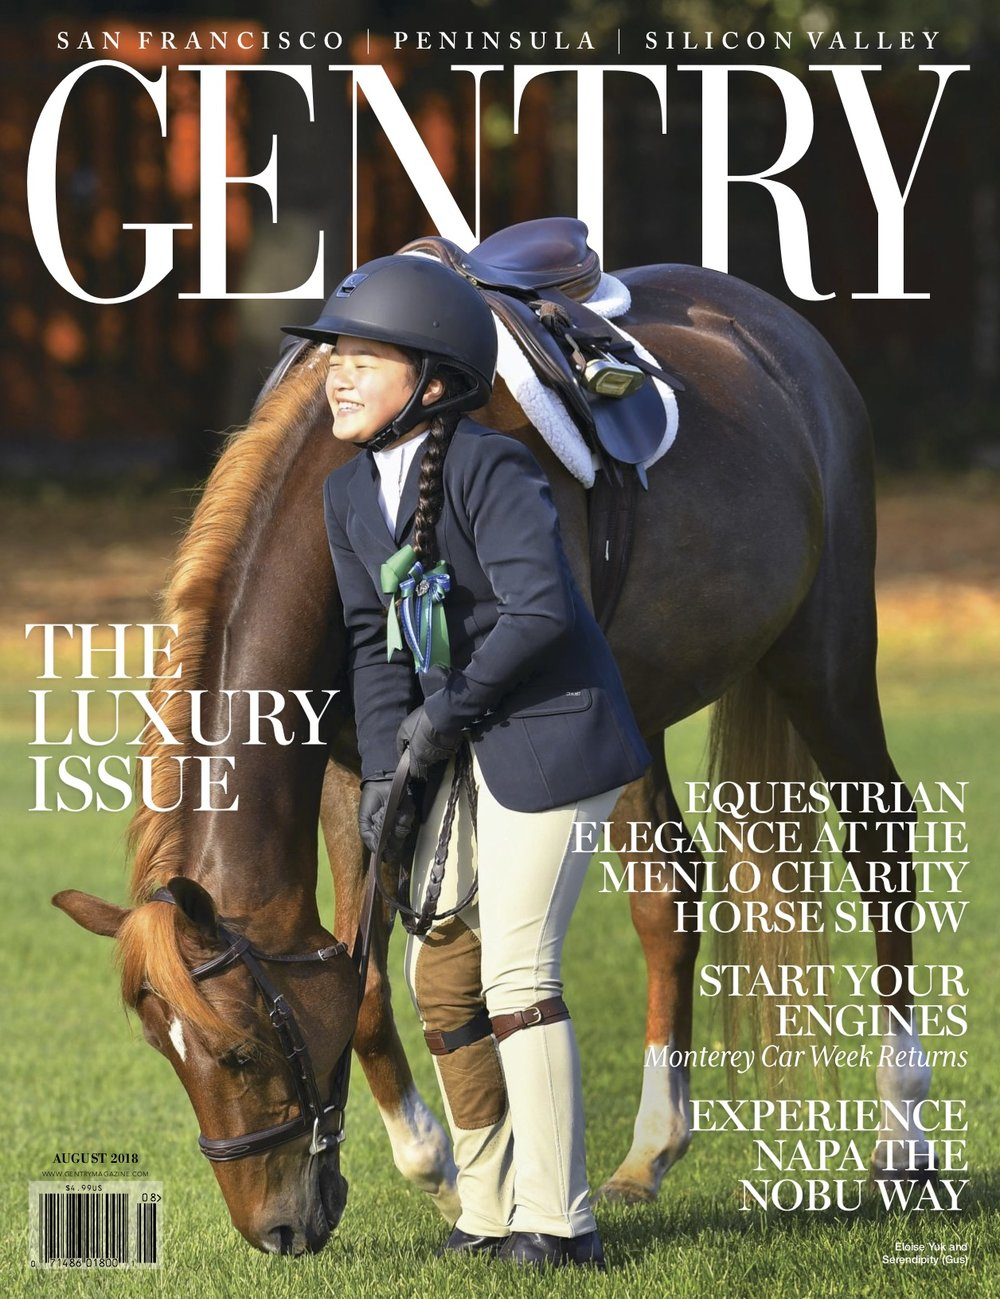 TRAVEL ARTICLE - GENTRY MAGAZINE